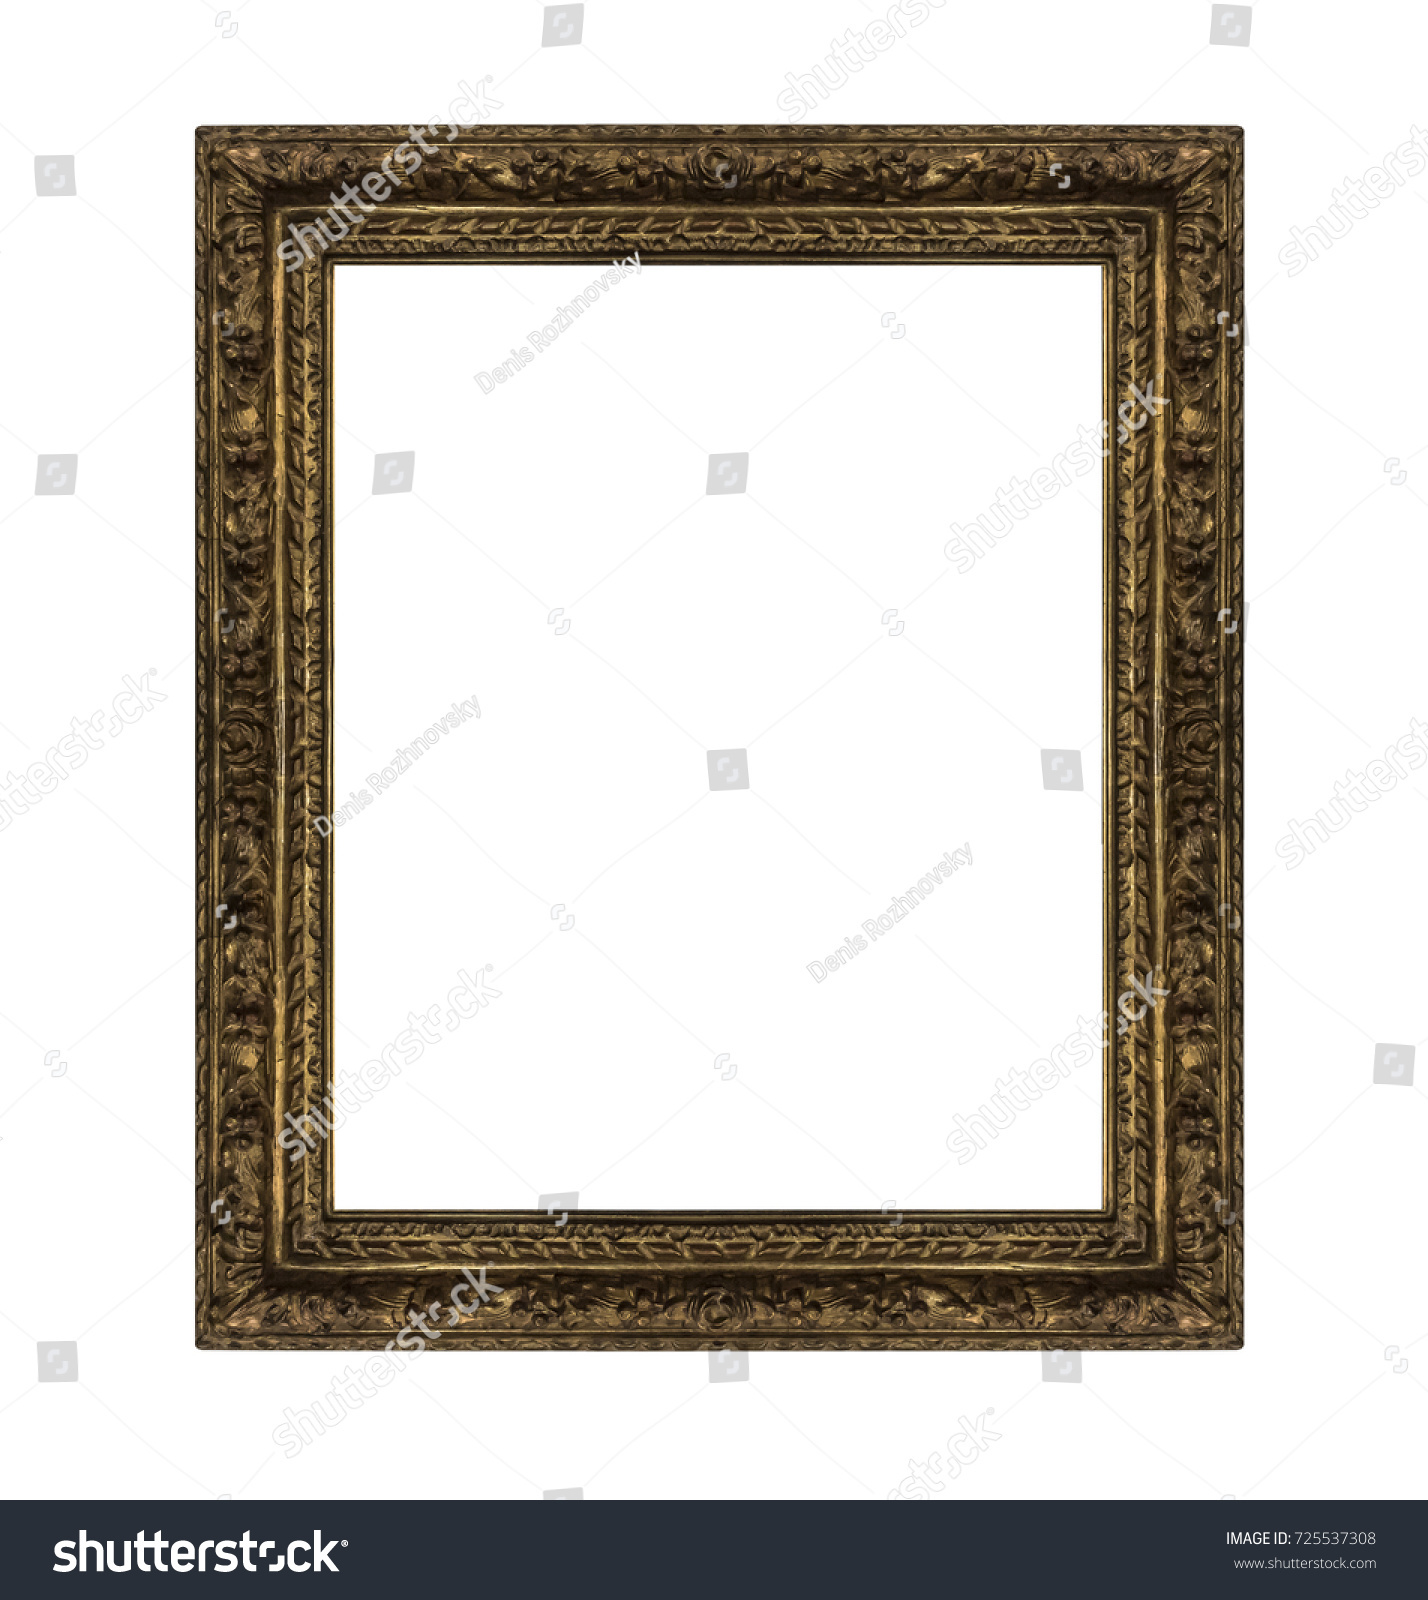 Very old picture frame isolated on white background. #725537308